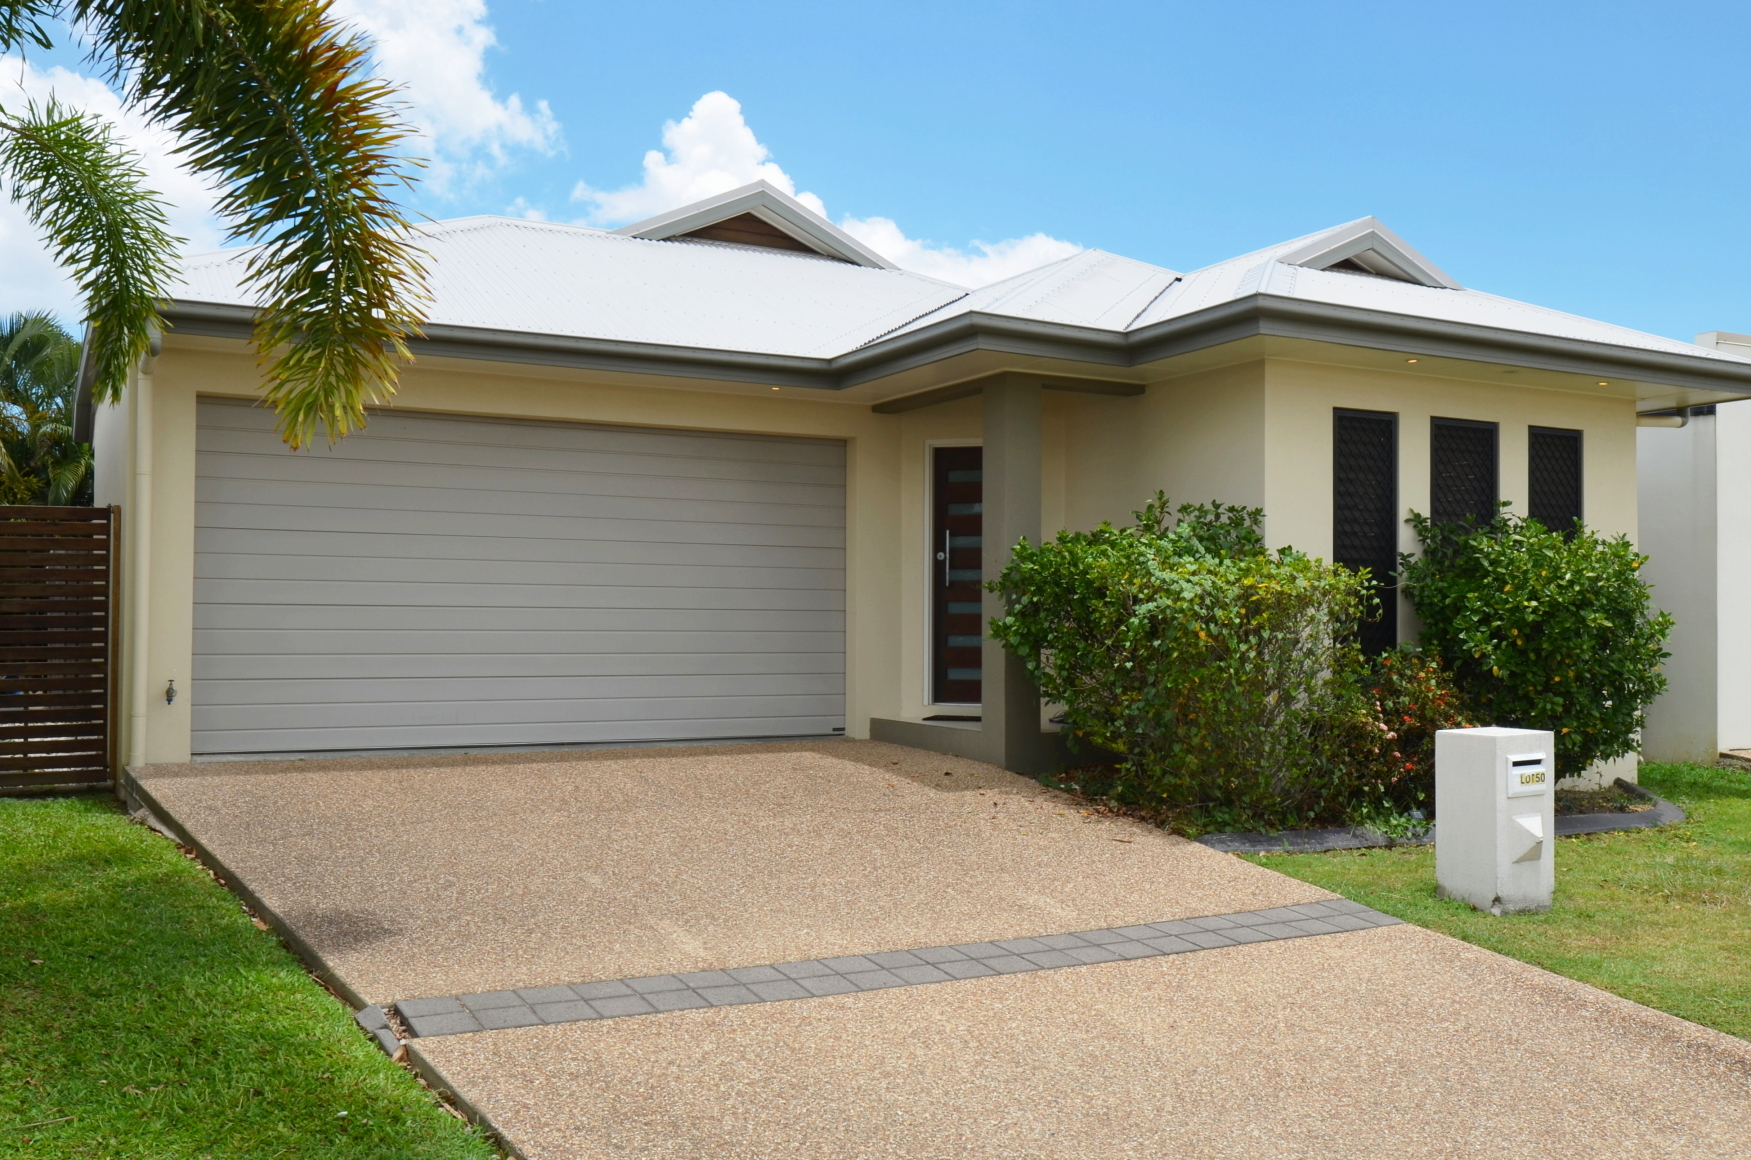 Virgo patterson realty townsville real estate priced